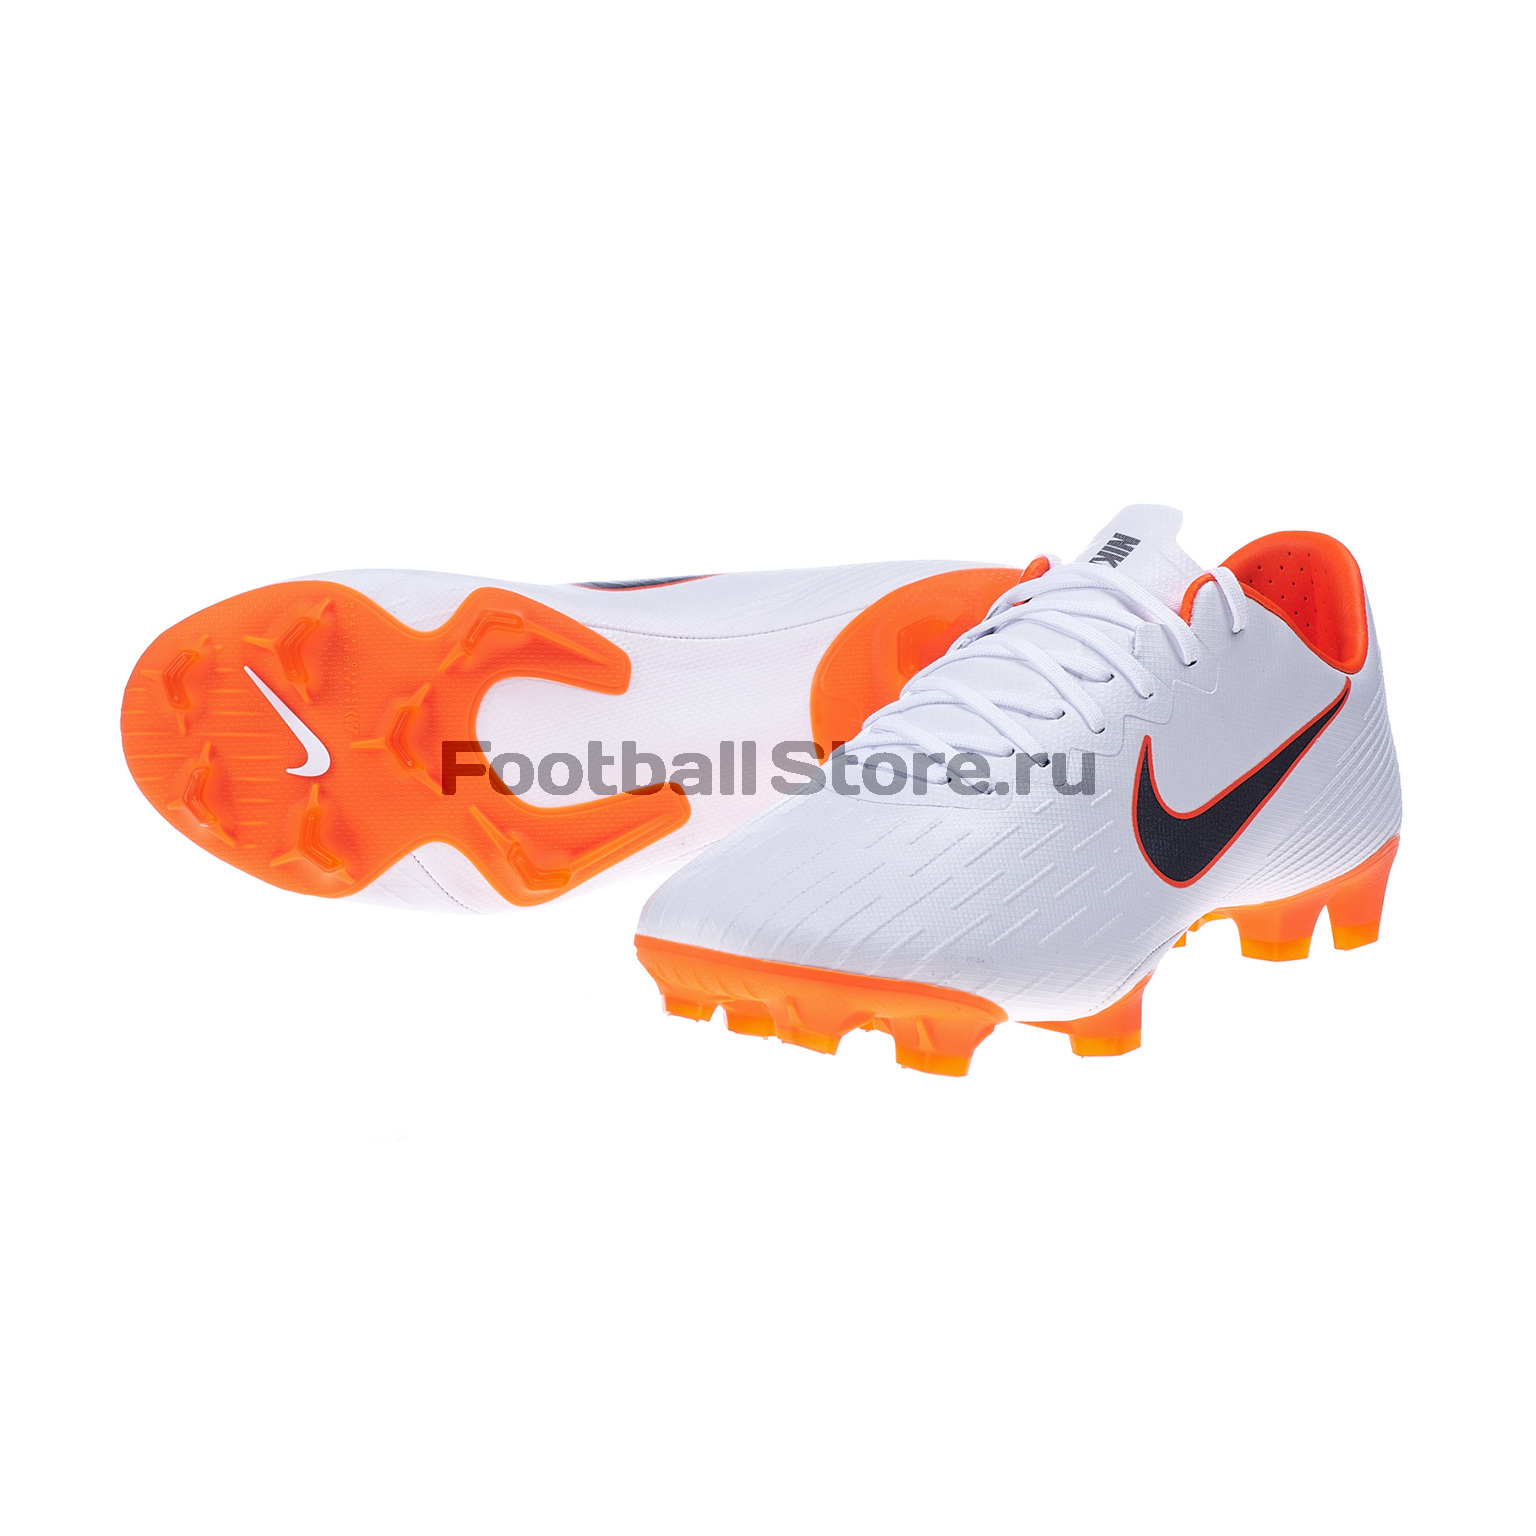 Бутсы Nike Vapor 12 FG Pro FG AH7382-107 nike vapor pro low d men s detachable football cleats